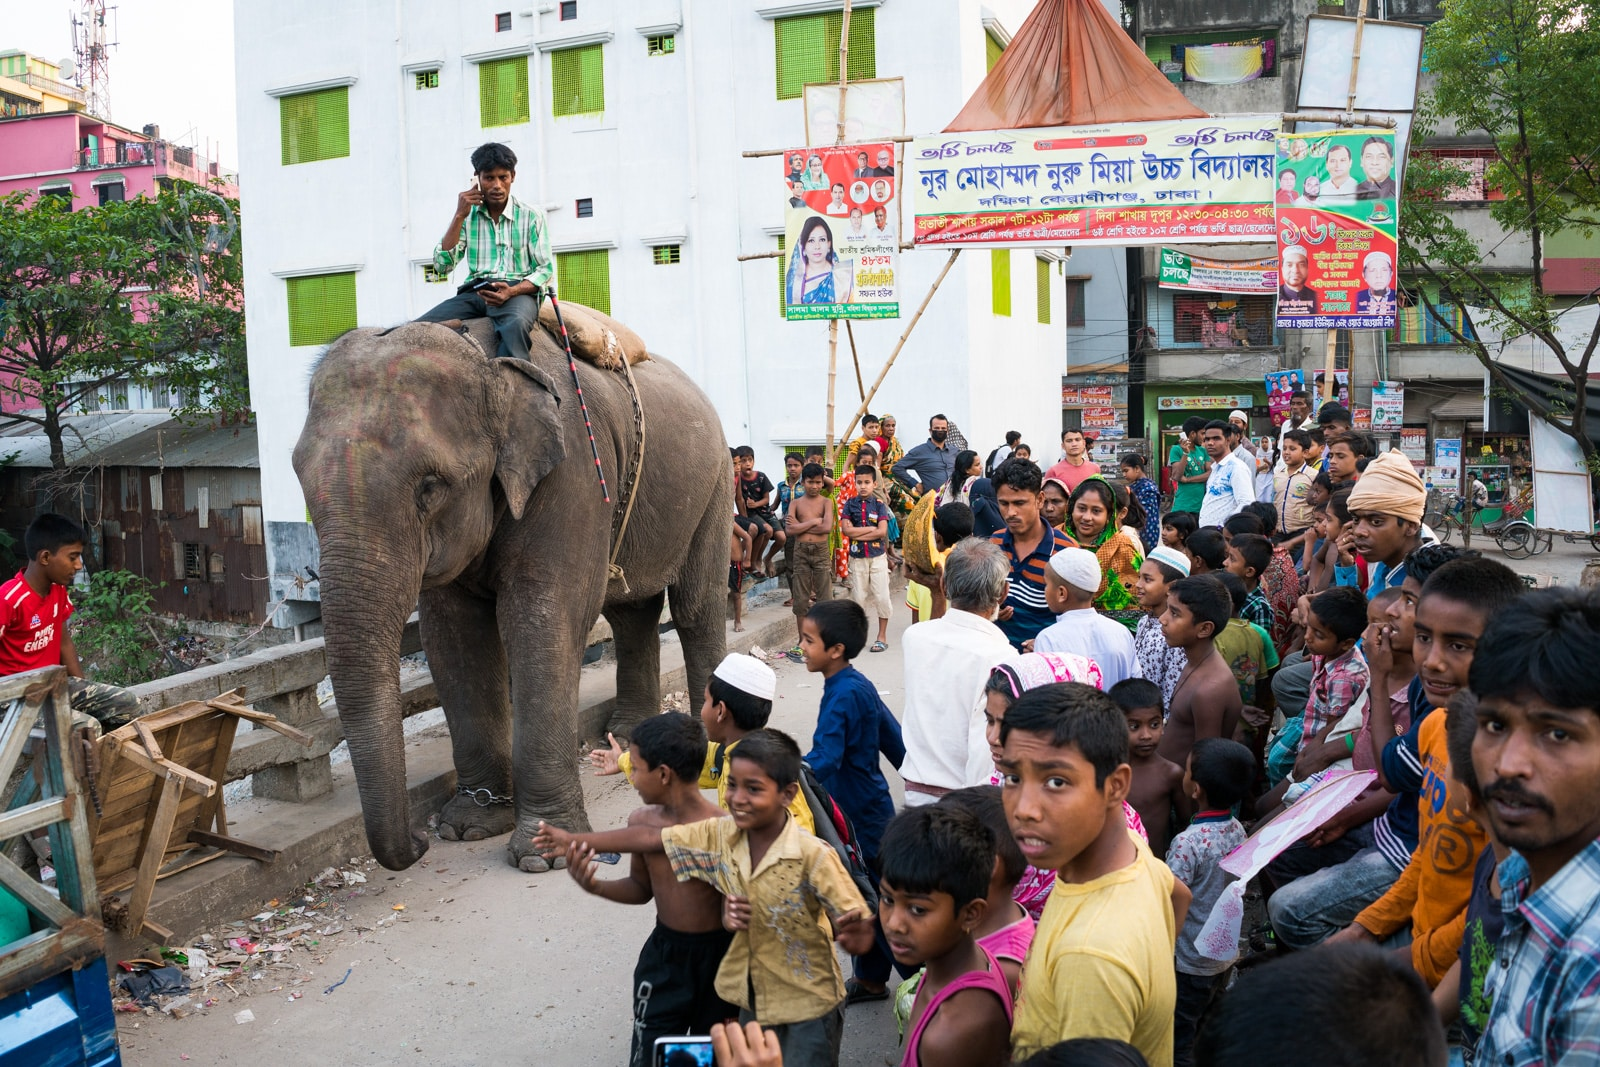 Ways of getting more off the beaten track while traveling - Elephant on the streets of Dhaka, Bangladesh - Lost With Purpose travel blog